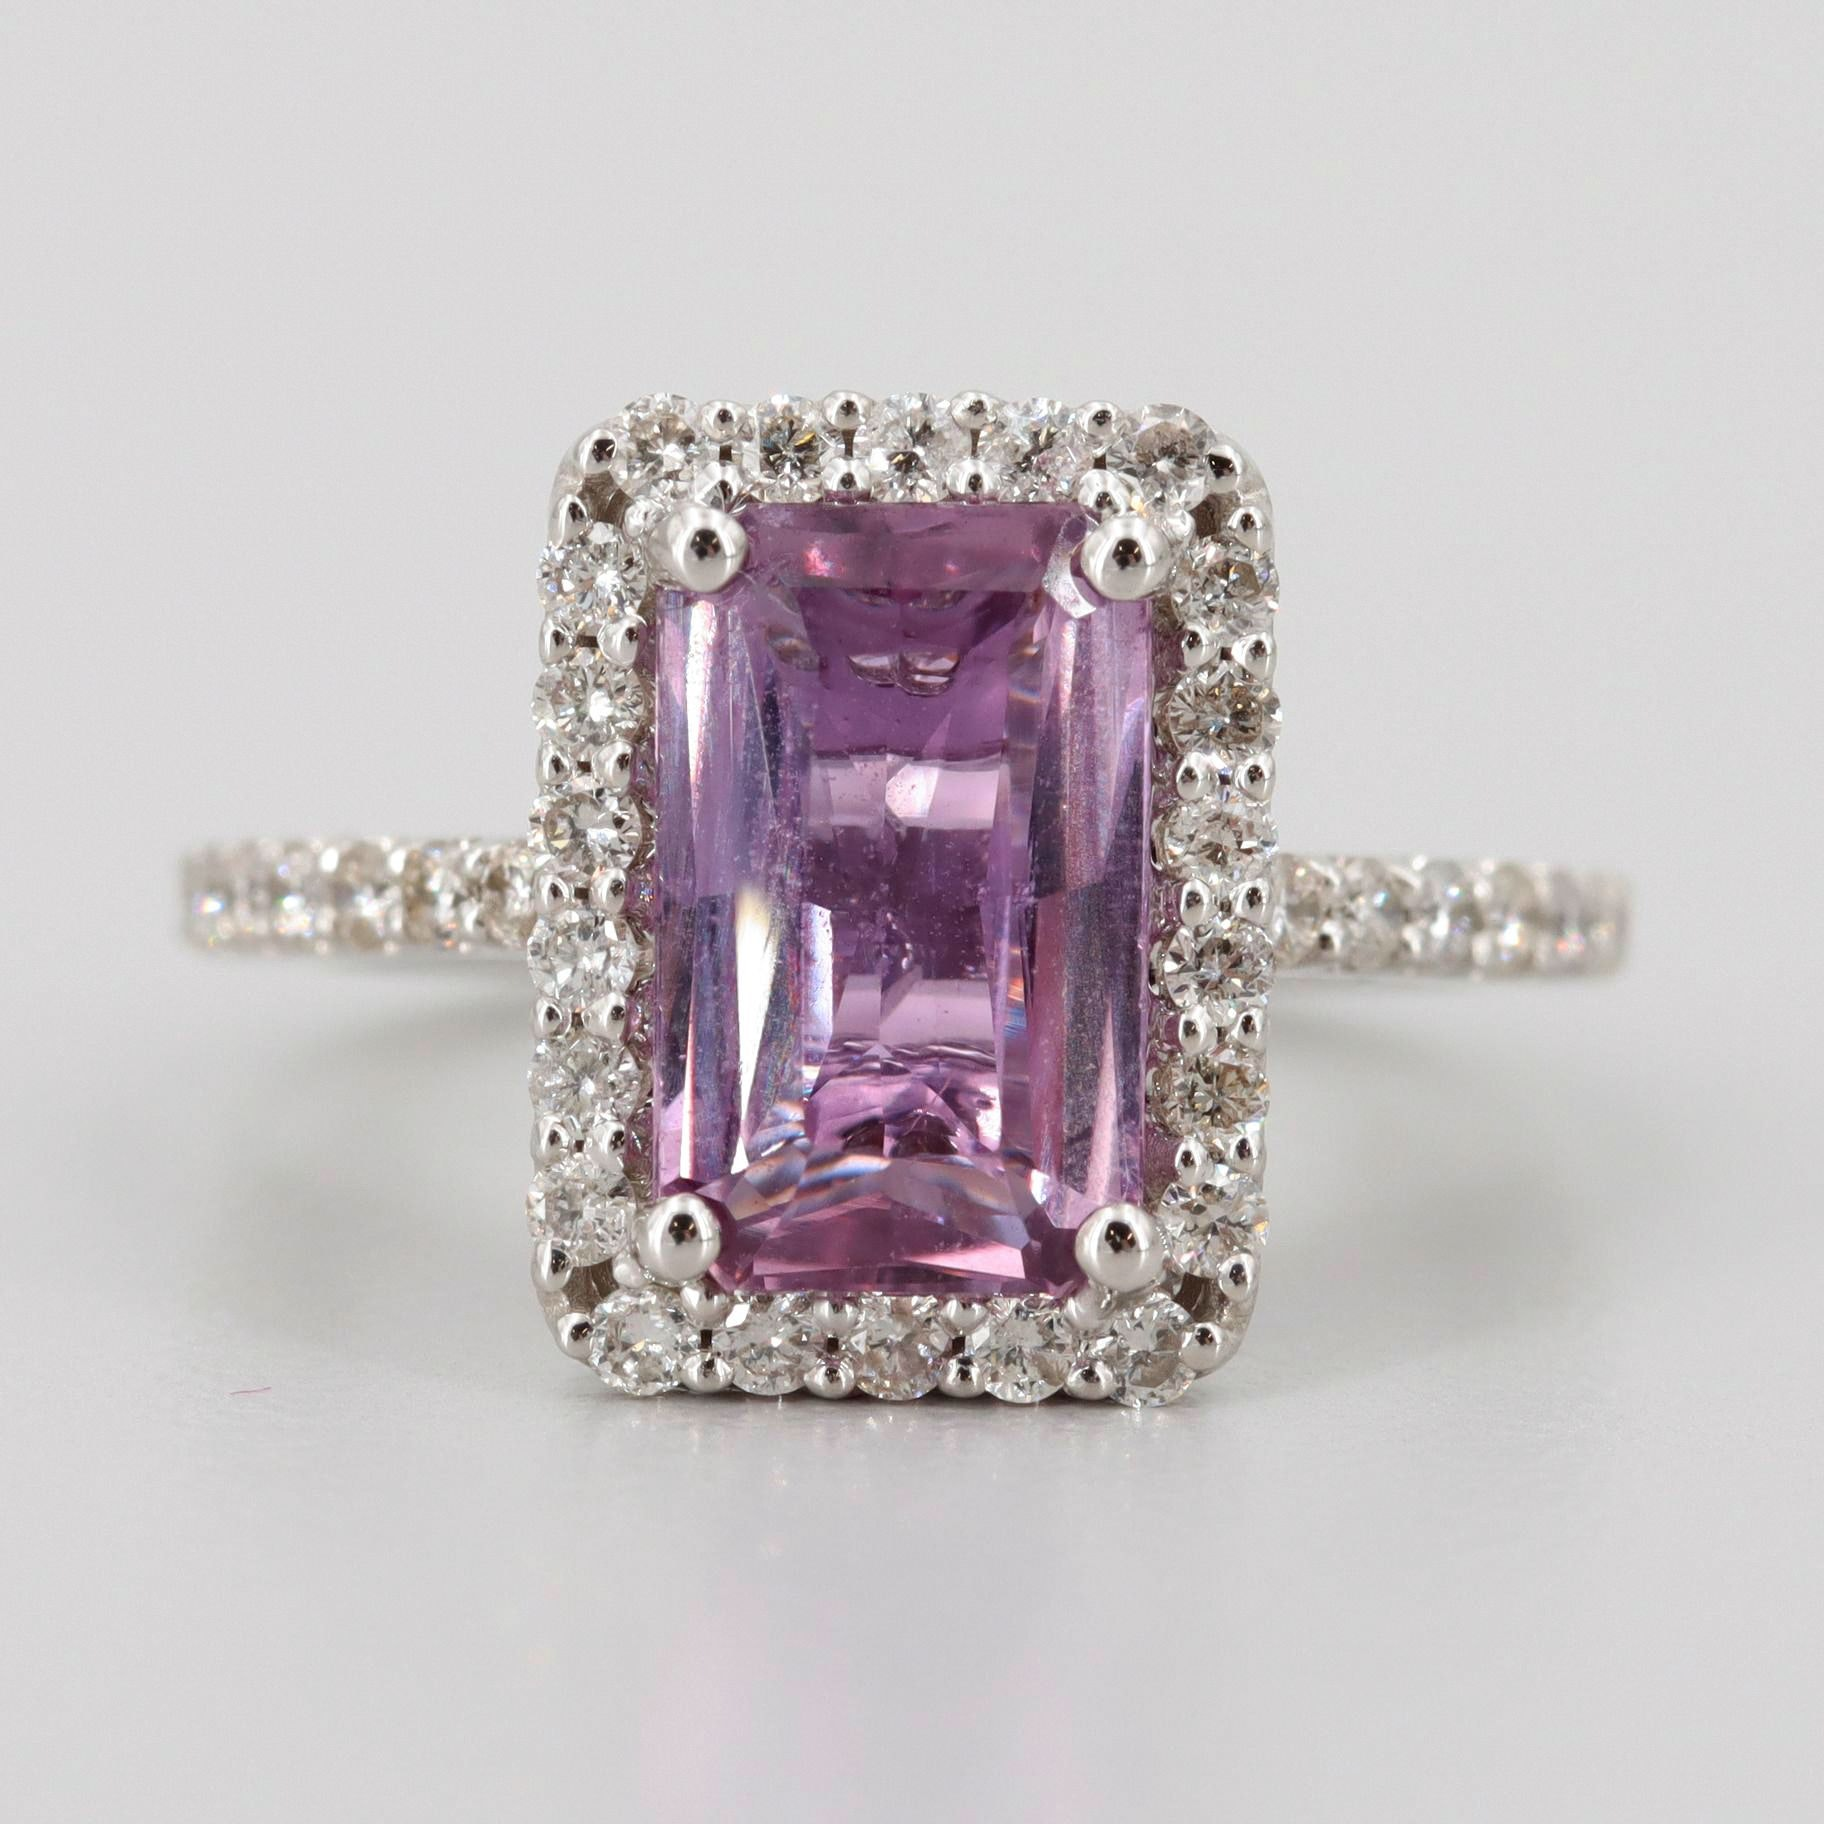 18K White Gold Pink Sapphire and Diamond Ring with GIA Report